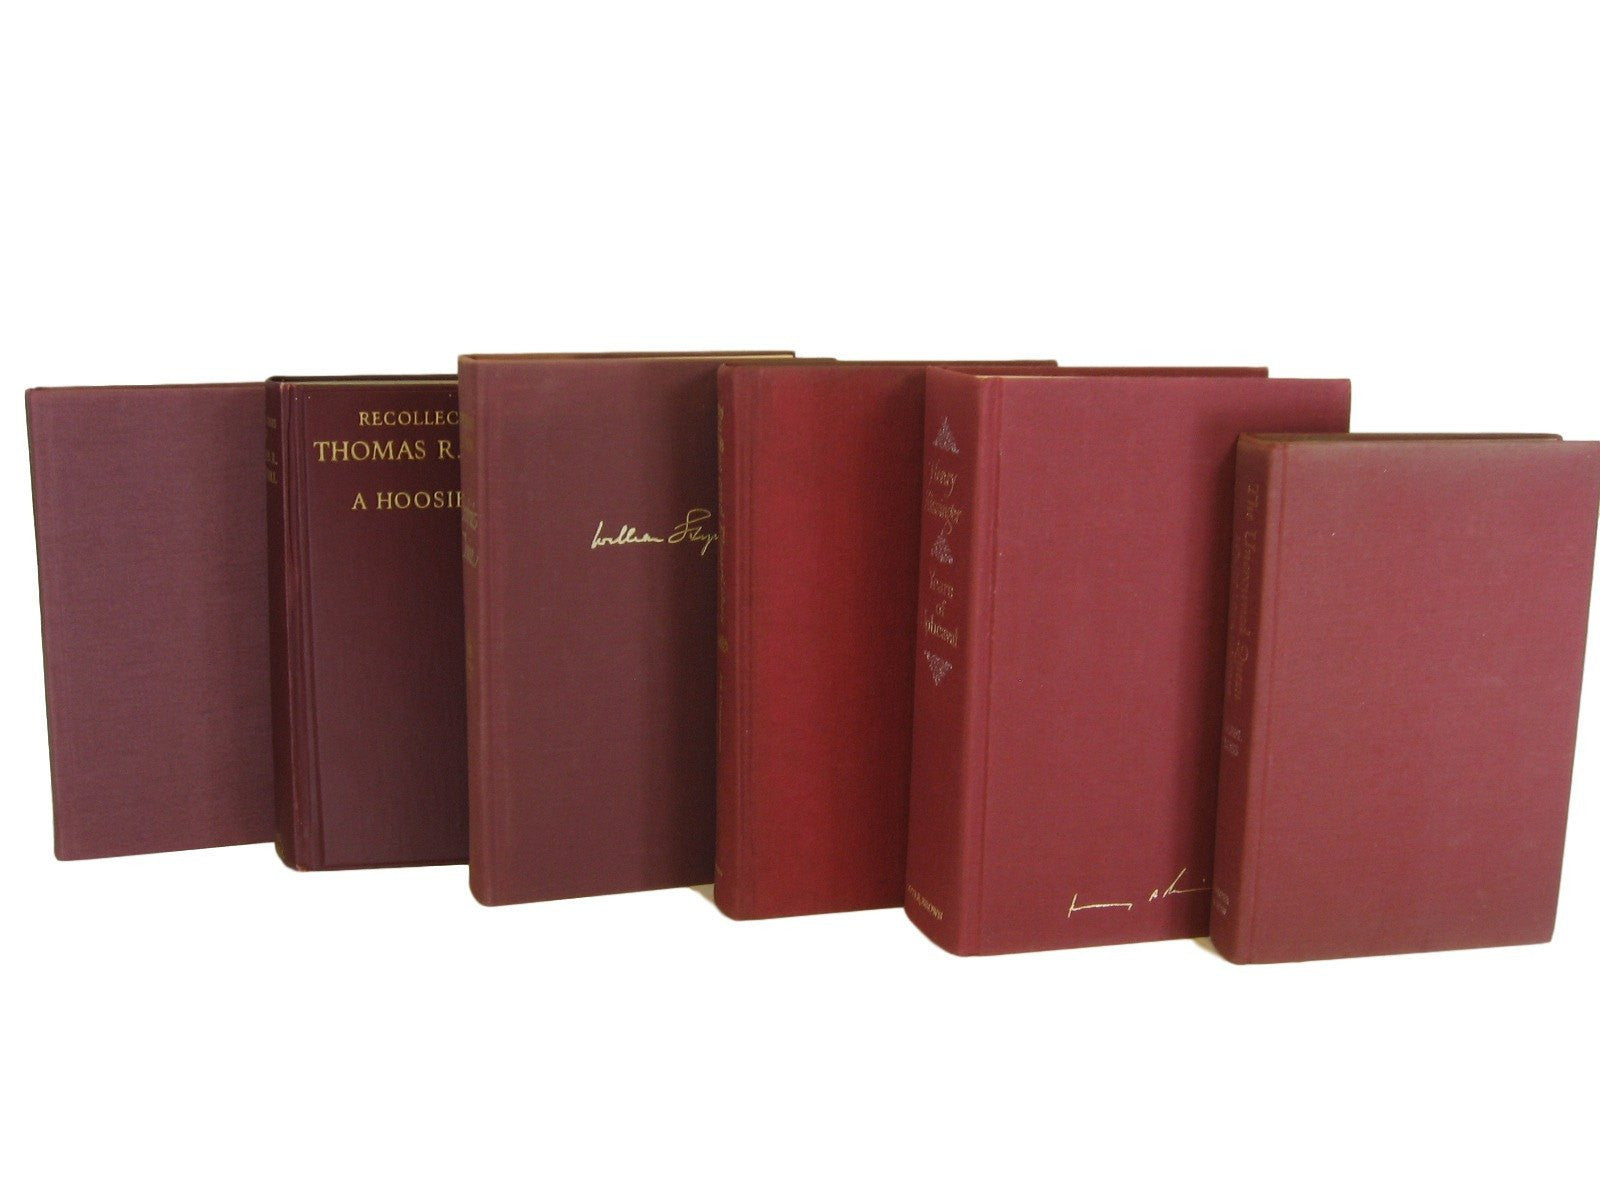 Red Burgundy Maroon Vintage Book Decor, S/6 - Decades of Vintage